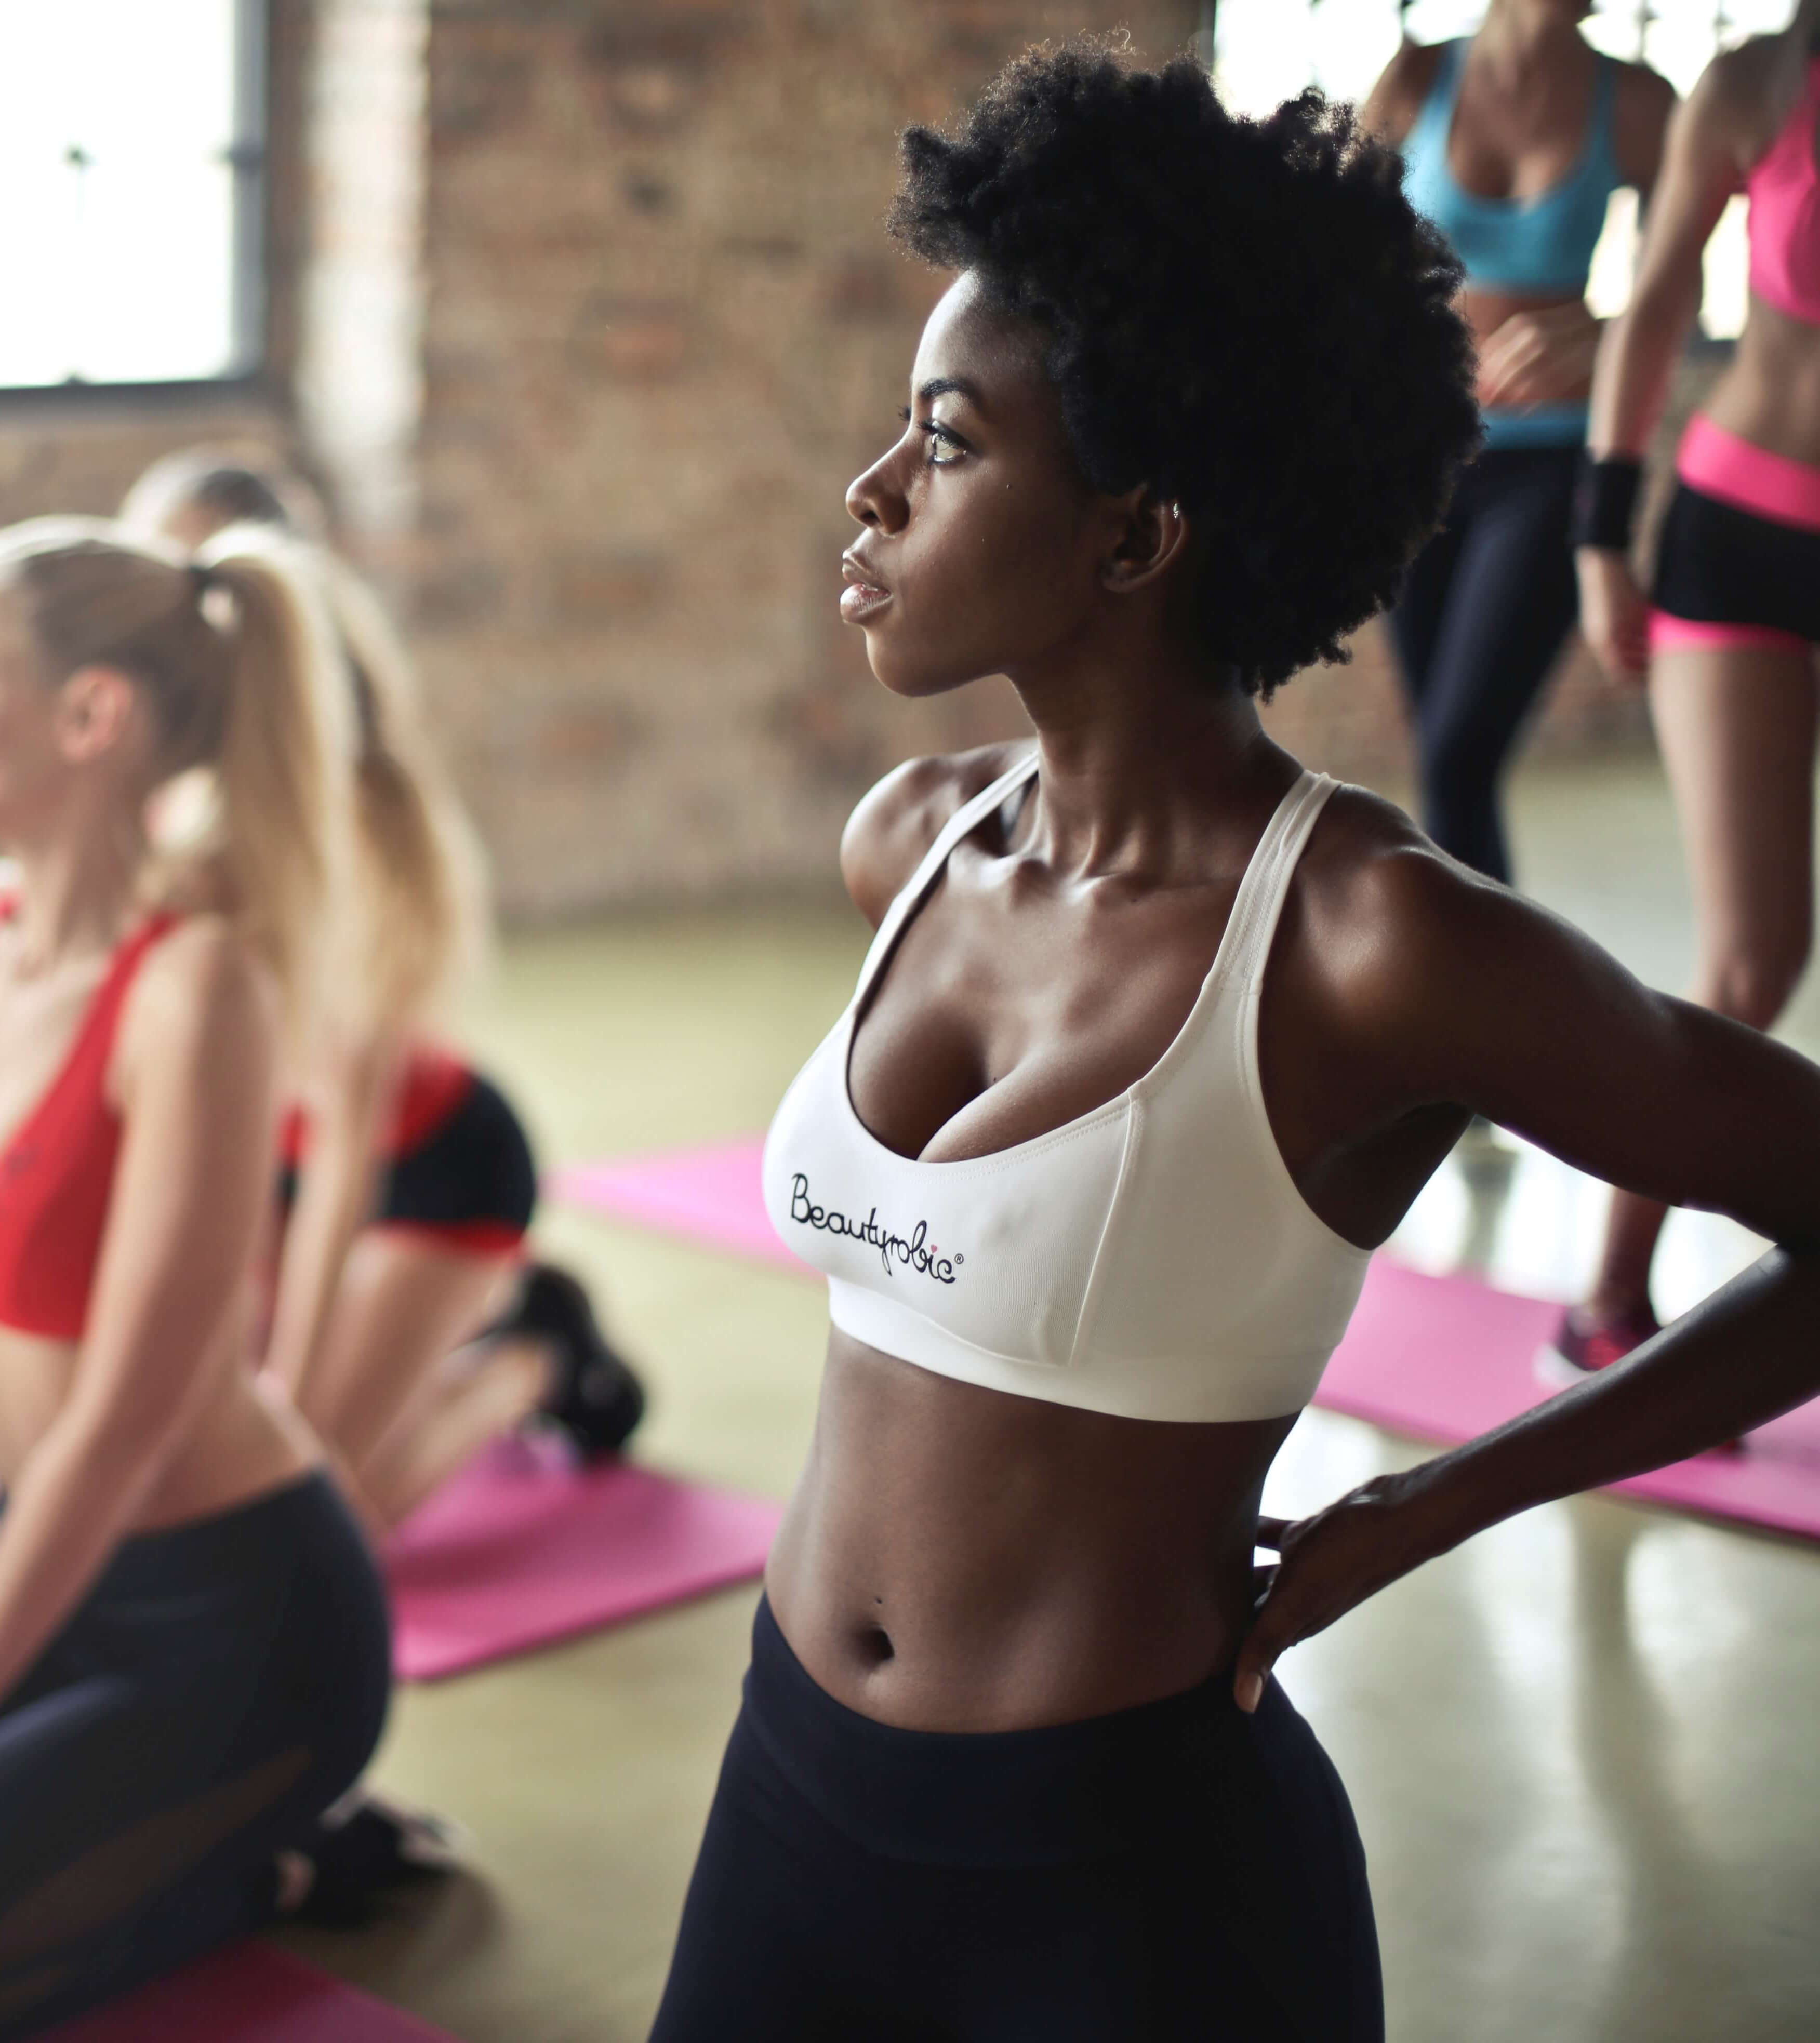 woman in a exercise class